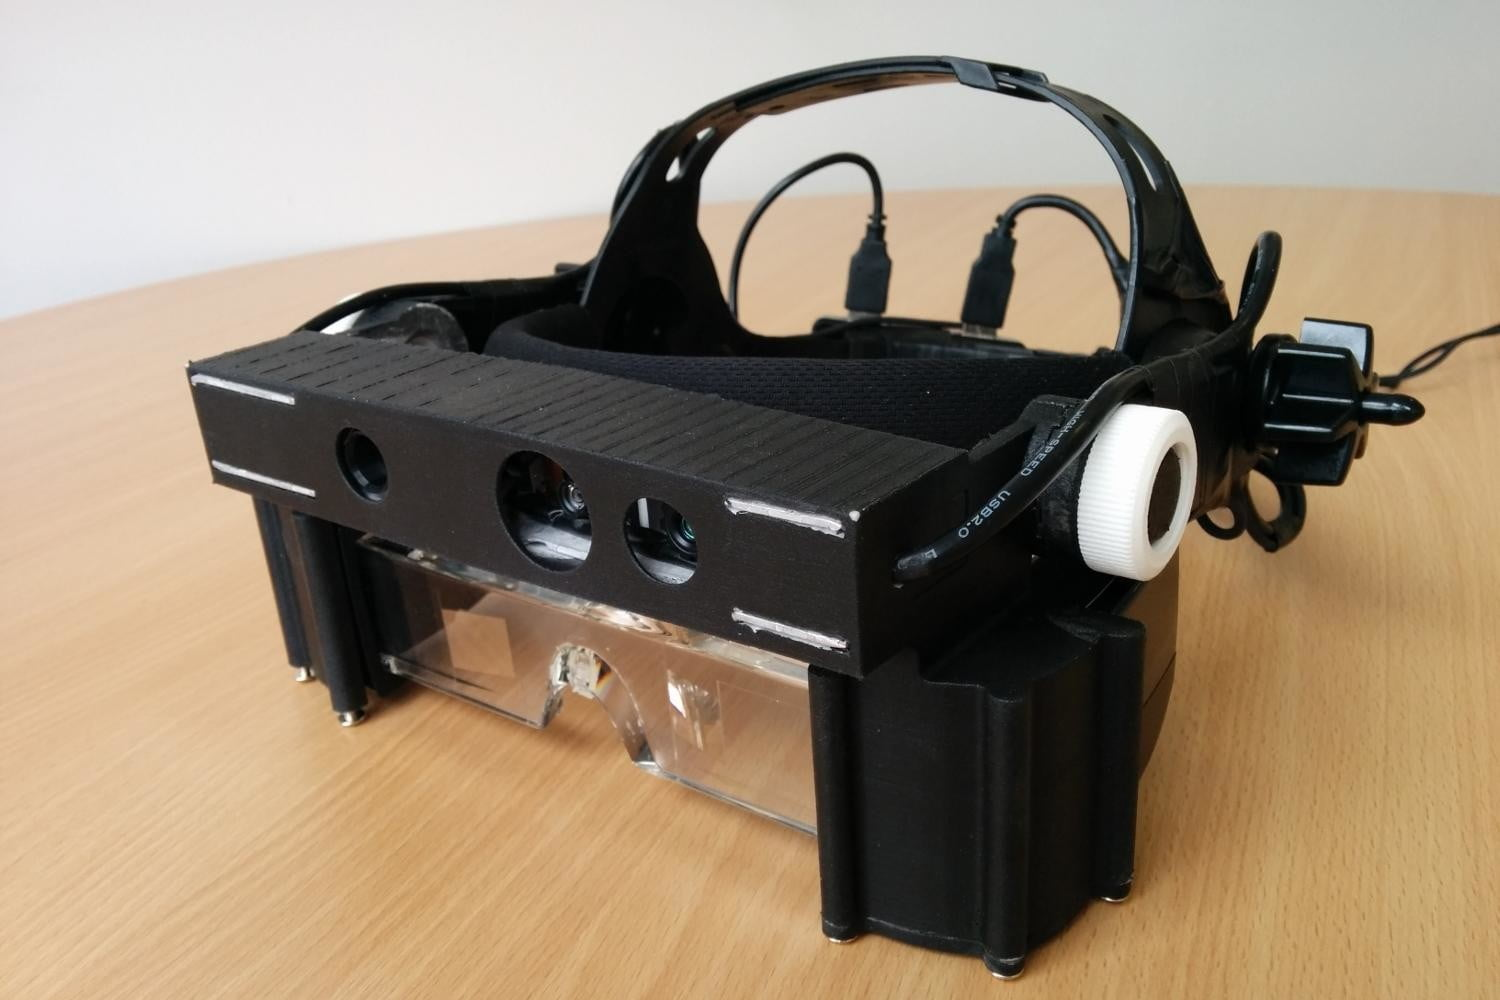 e090dc69910 5 Amazing Gadgets That Are Helping the Blind See Again